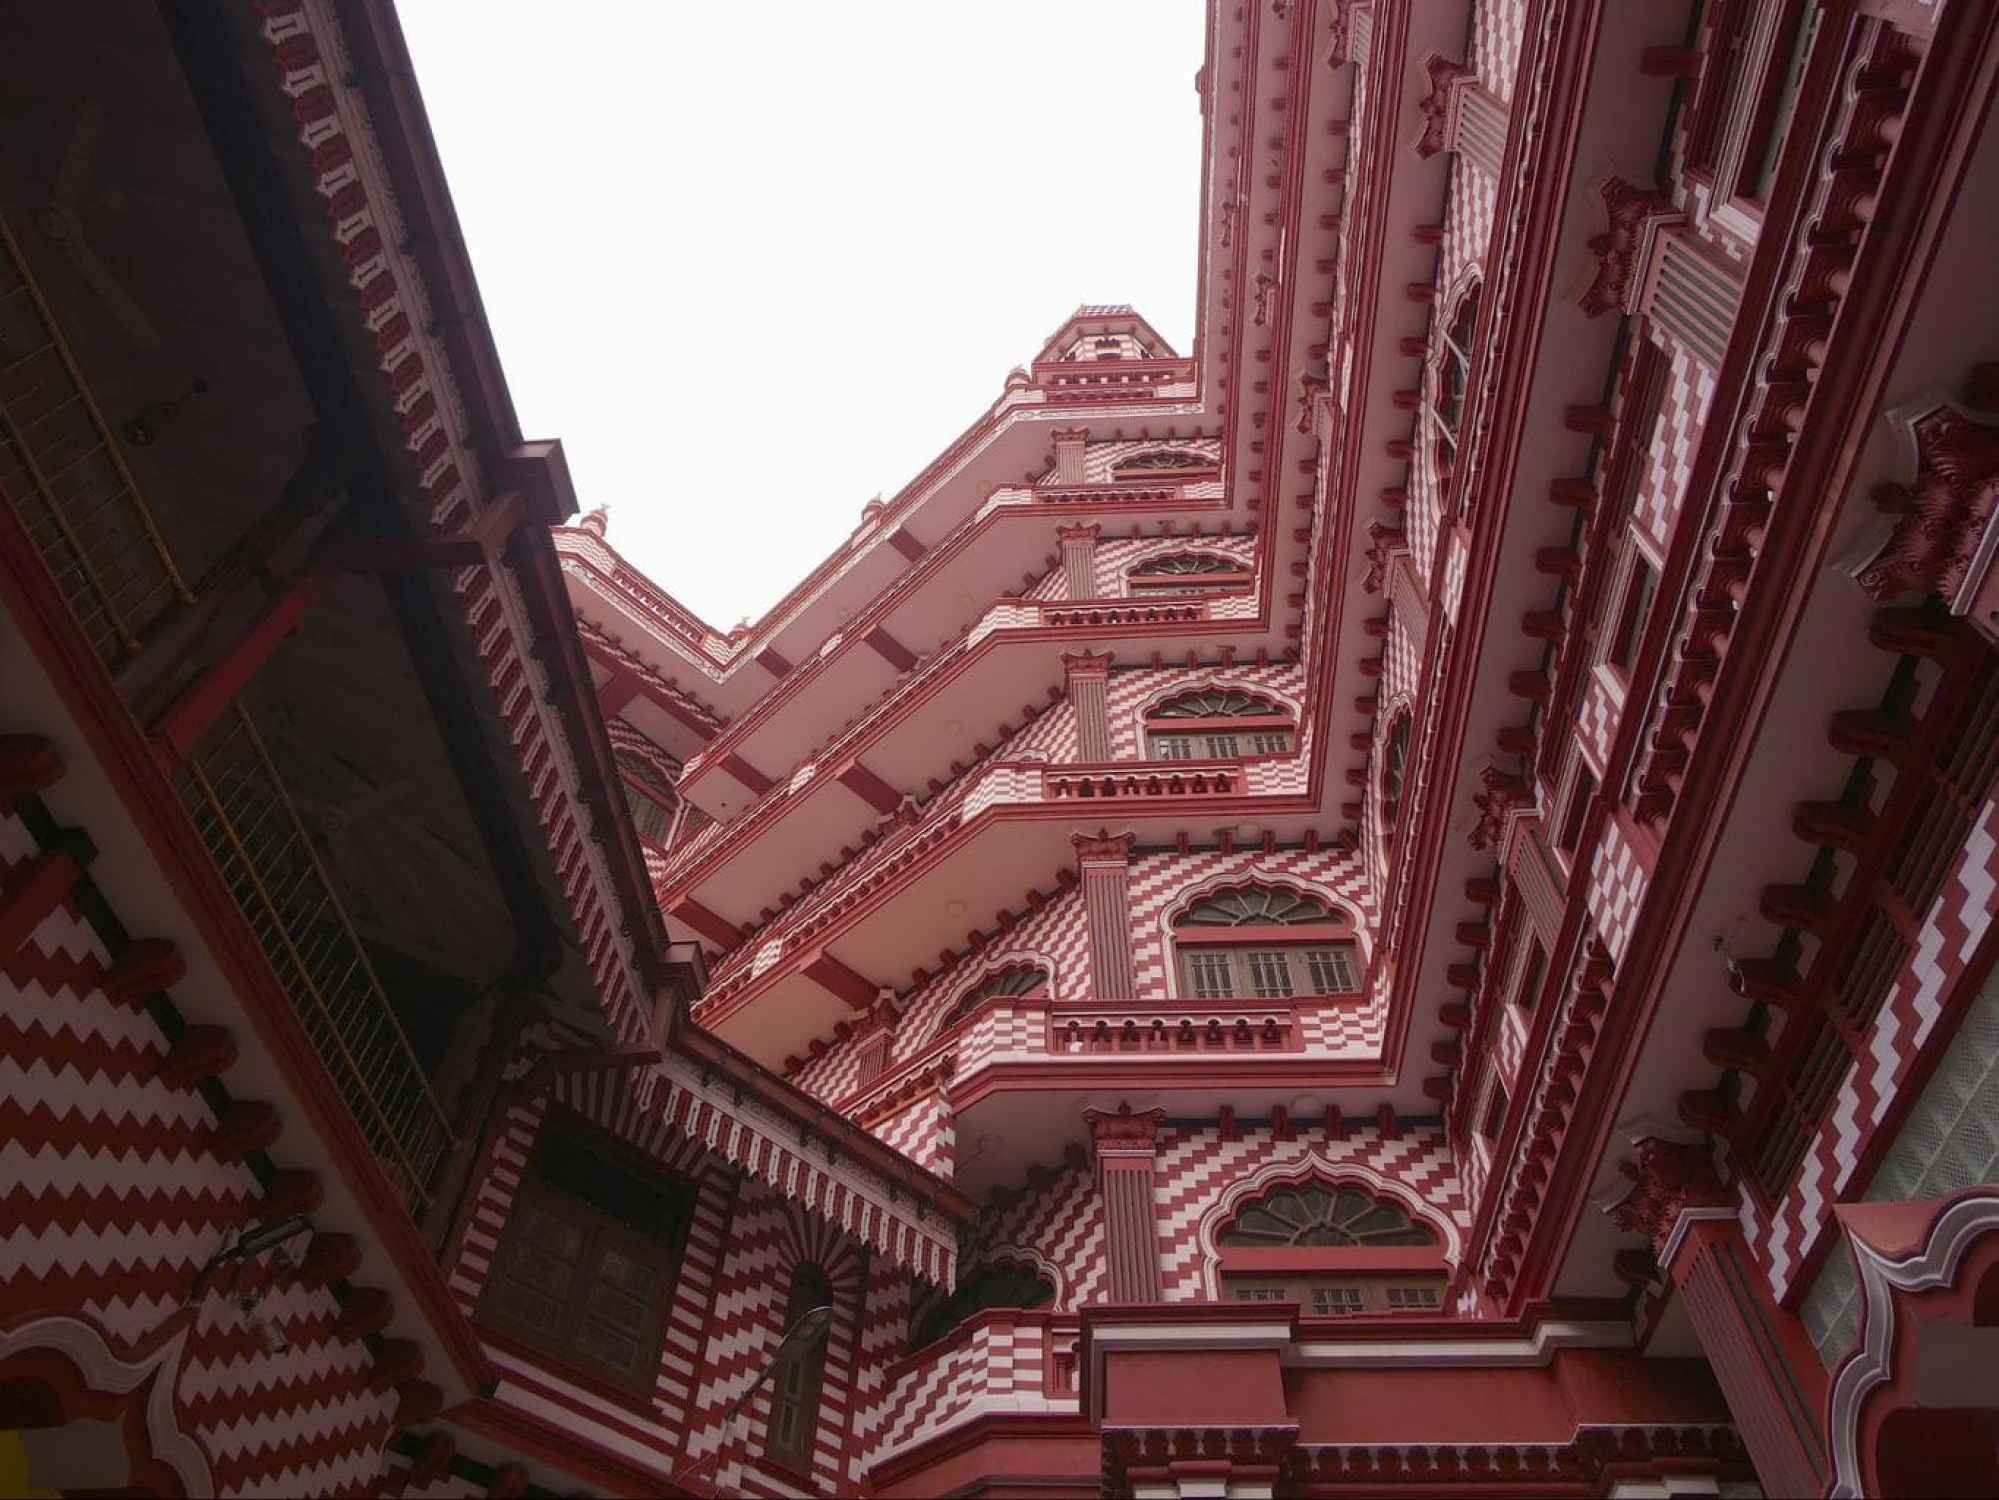 Inside the Red Mosque in Colombo